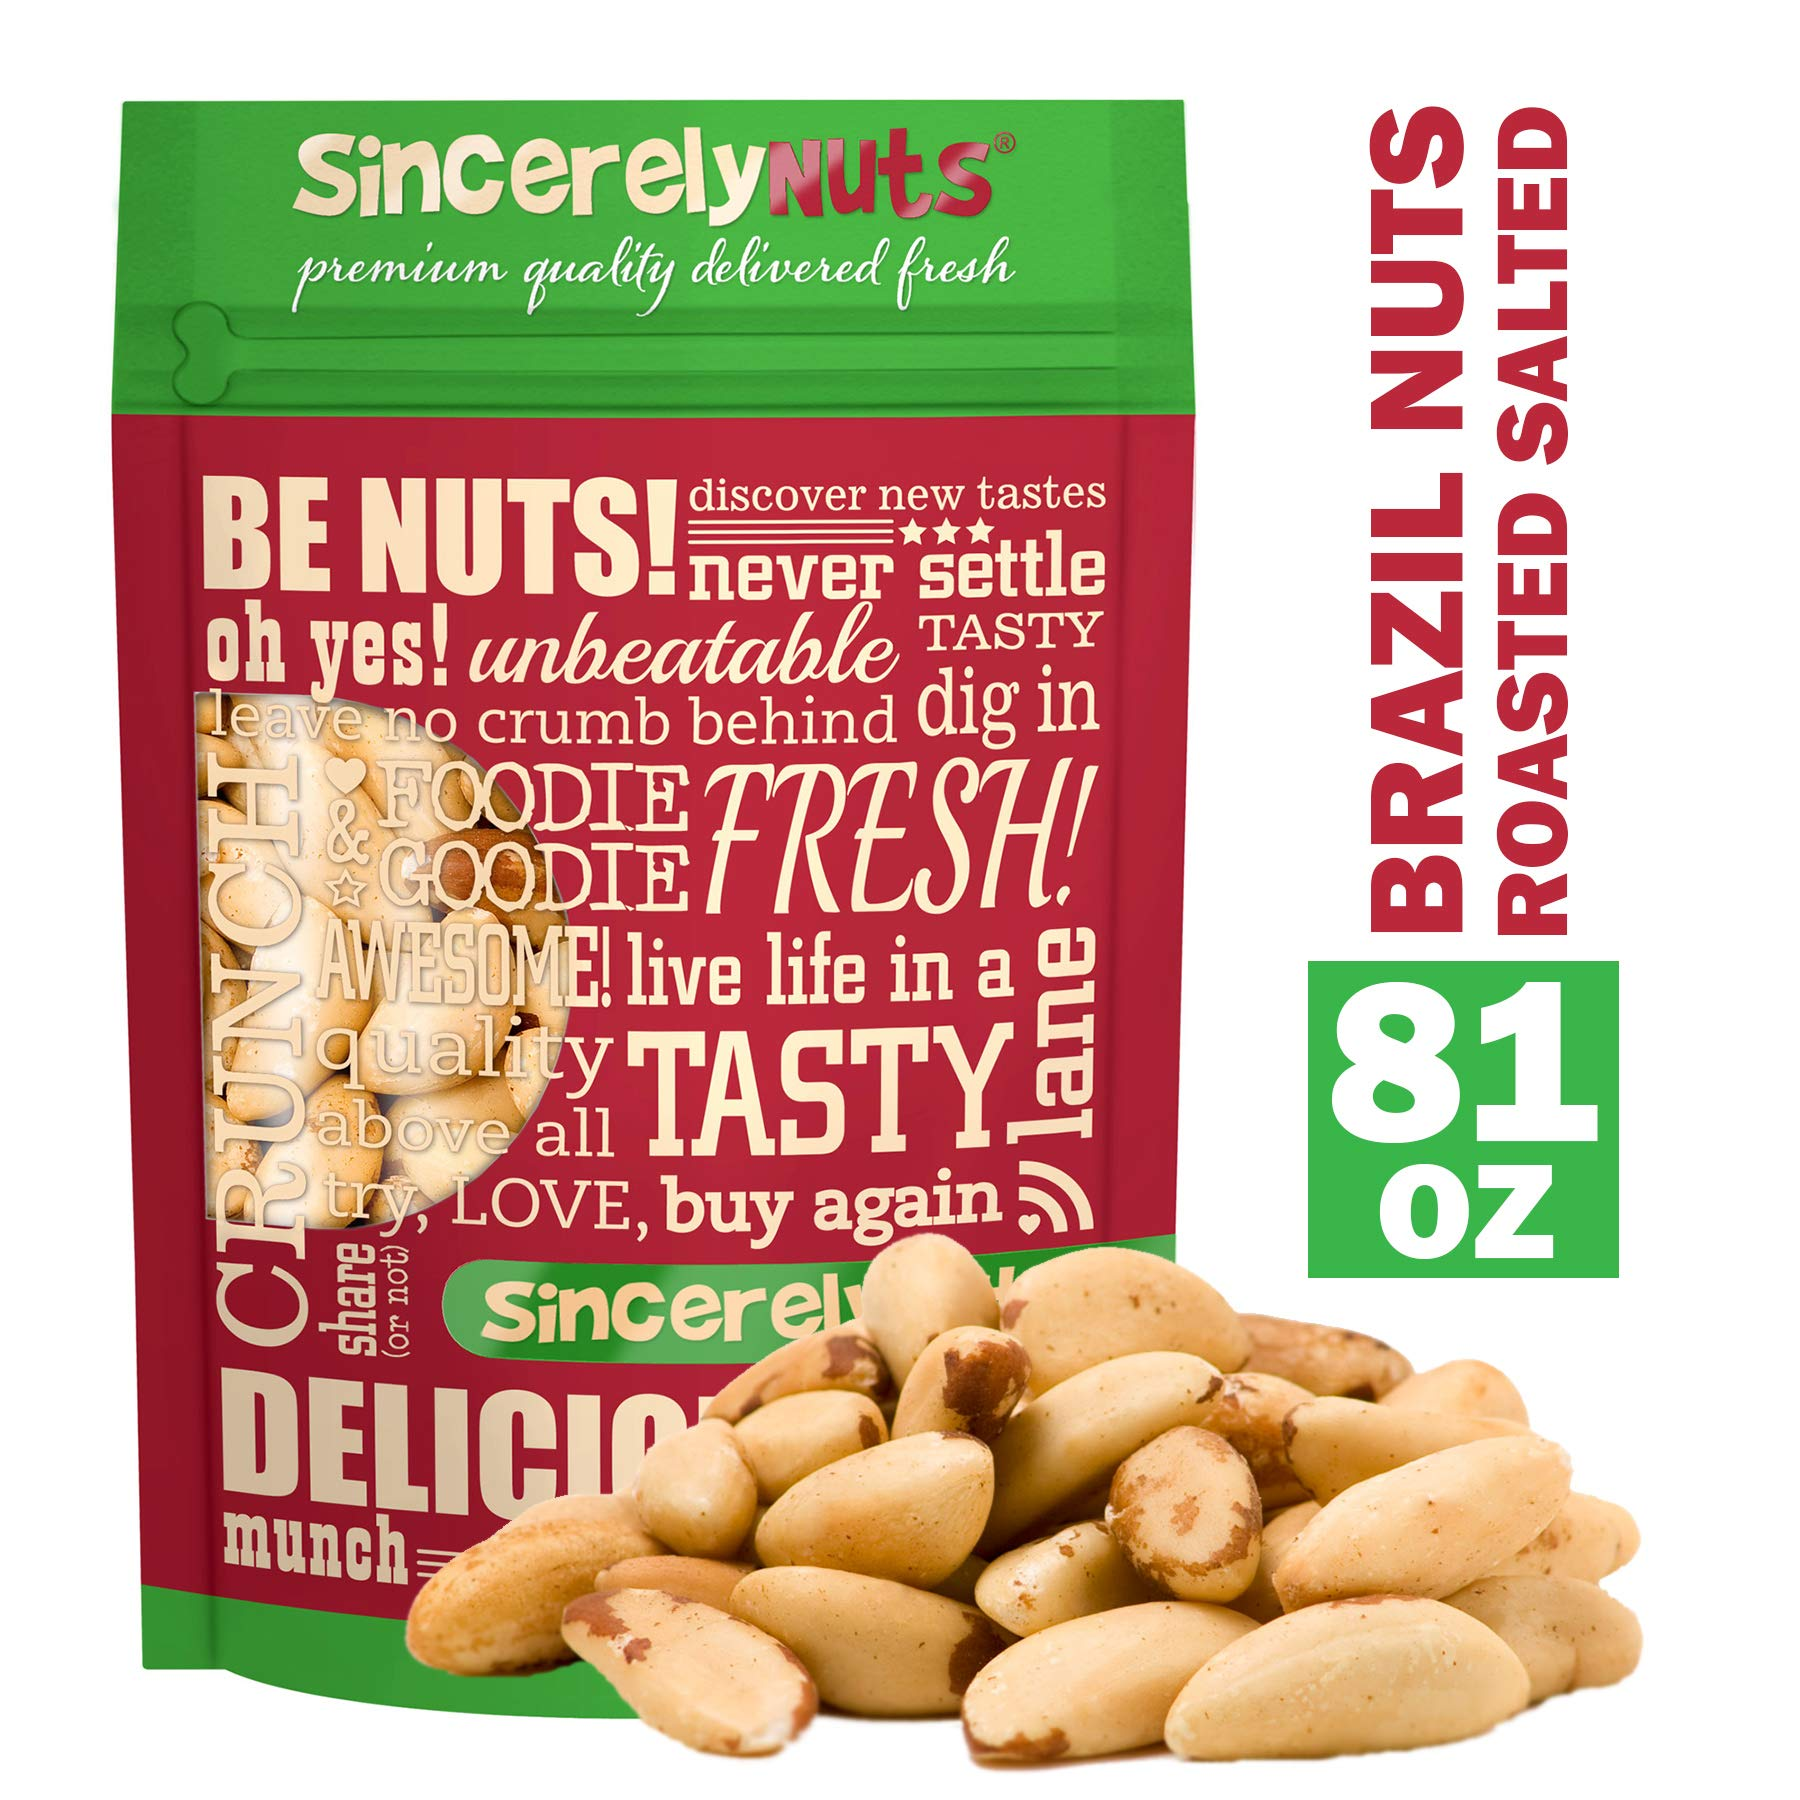 Sincerely Nuts Brazil Nuts Roasted and Salted (5 Lb. Bag) | Delicious Healthy Snack Food | Whole, Kosher, Vegan, Gluten Free | Gourmet Snack | Great Source of Protein, Vitamins & Minerals by Sincerely Nuts